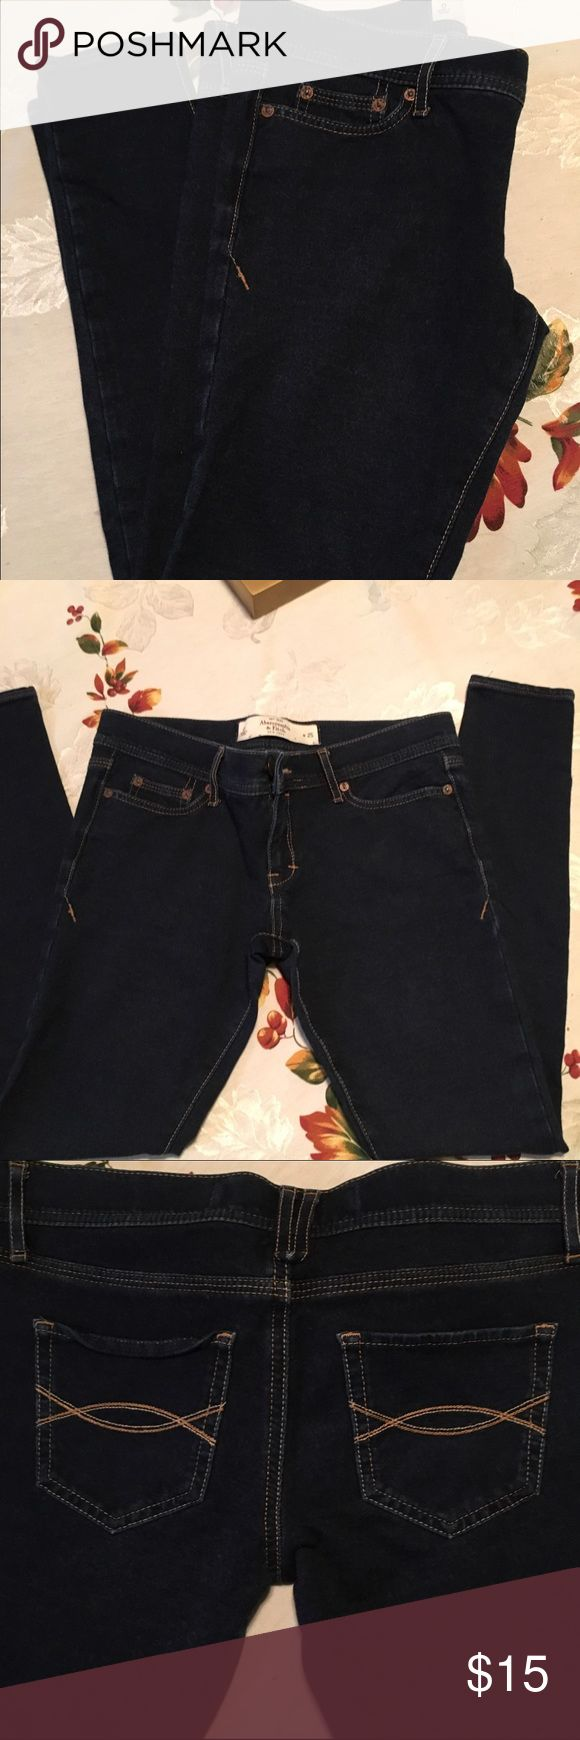 Abercrombie and Fitch Jeggins Abercrombie and Fitch jeggins. Very soft and perfect stretch. Looks amazing and can be worn with boots. Abercrombie & Fitch Jeans Skinny